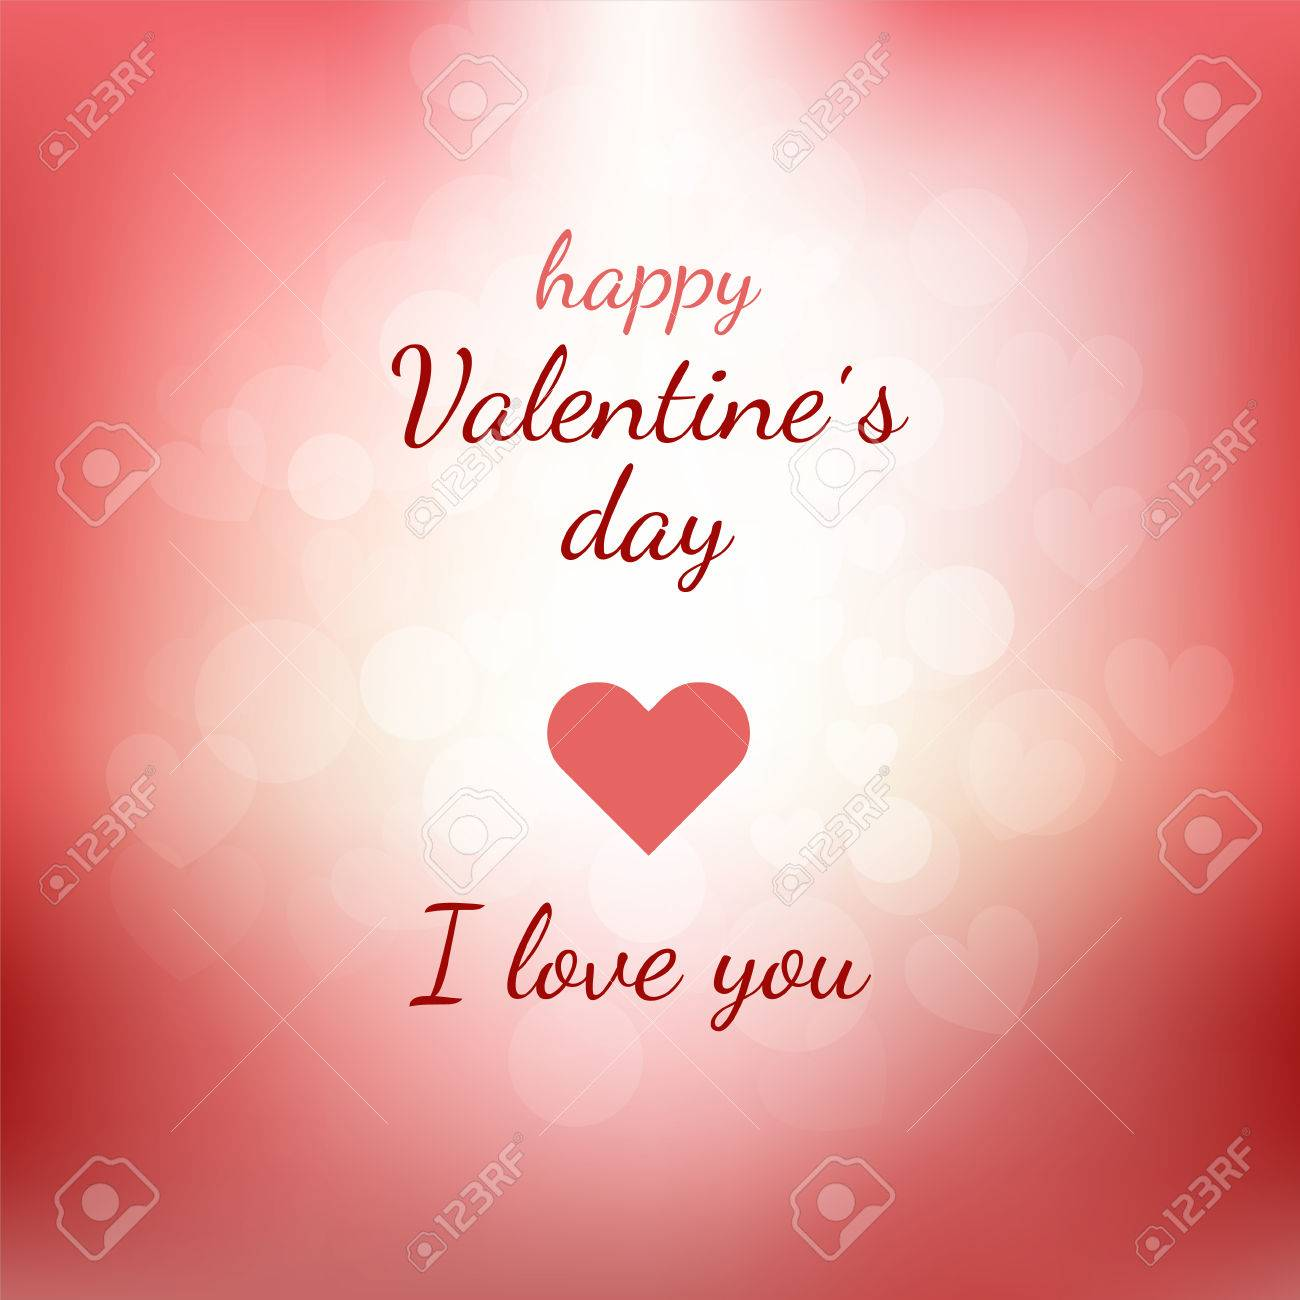 Happy Valentines Day Gift Card With Lettering And Pink And Red